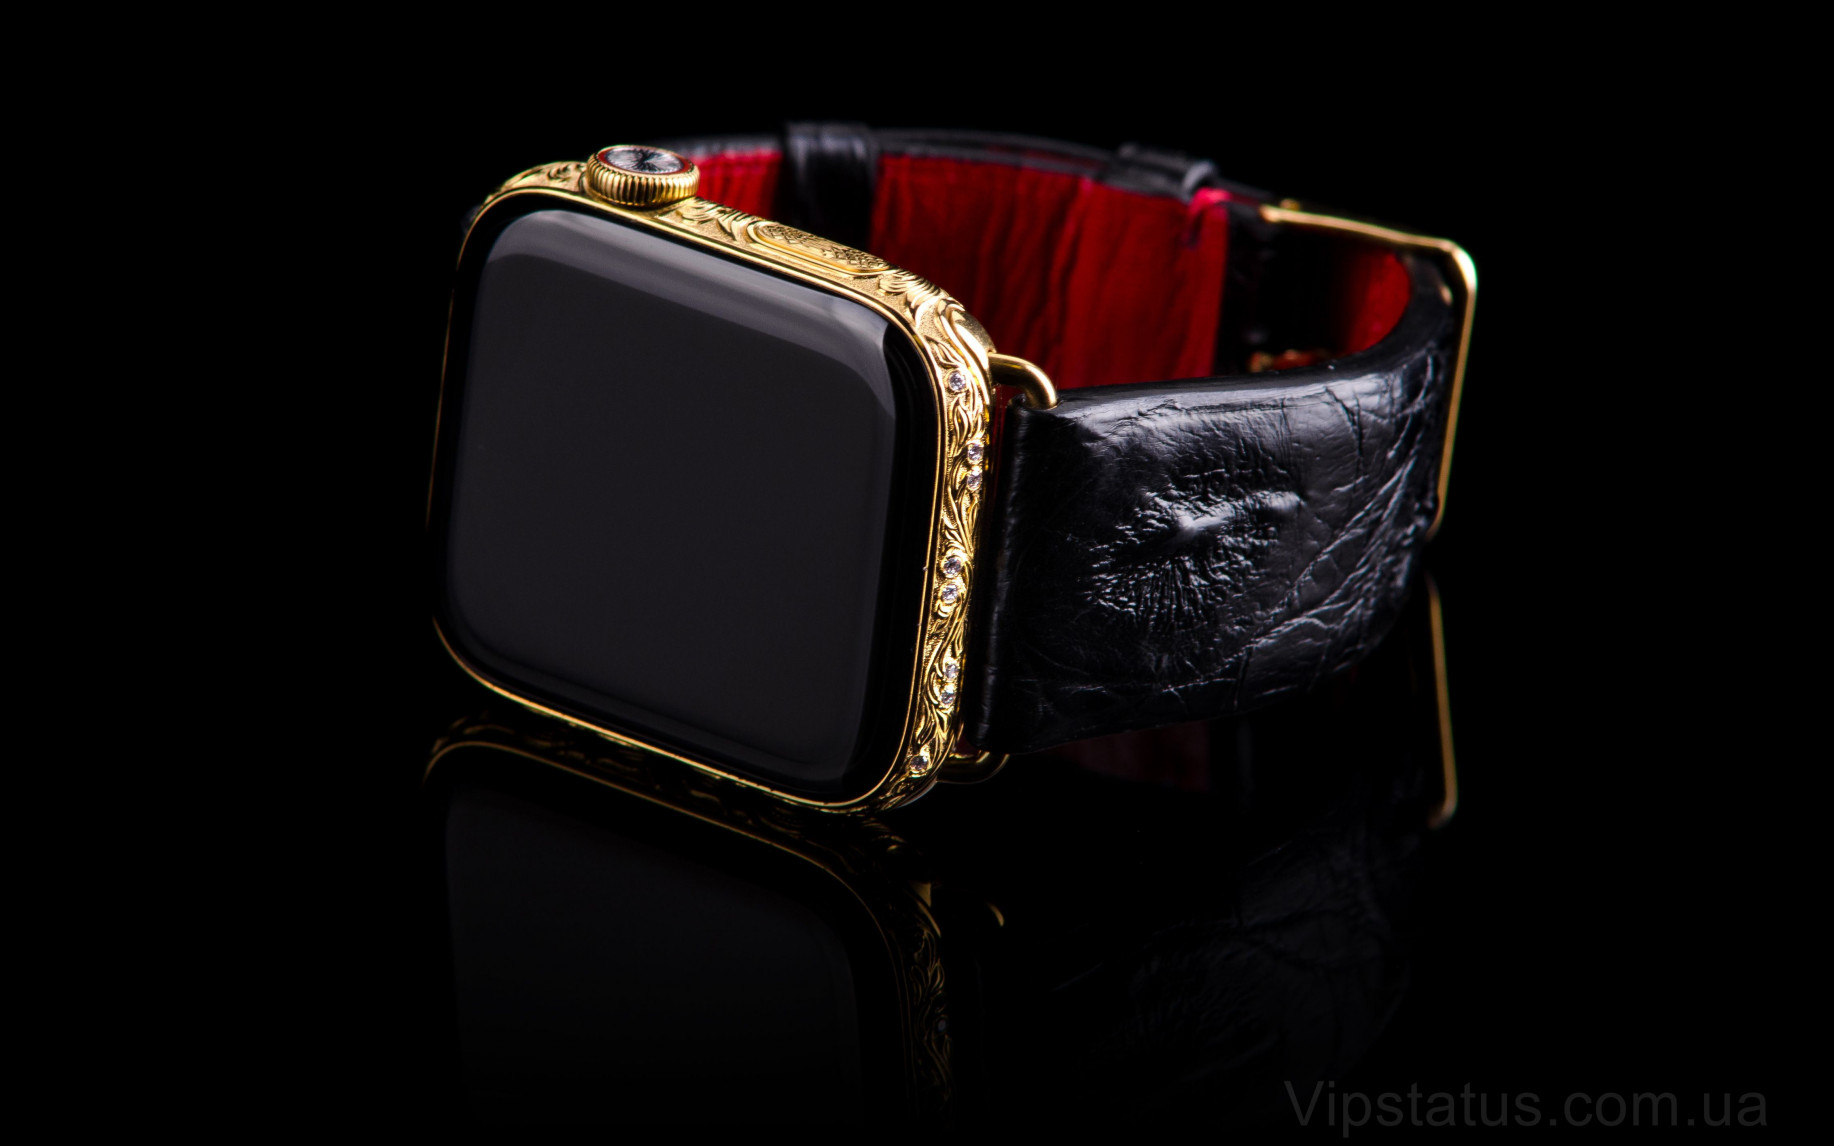 Элитный Diamond Monarch Apple Watch 5 Diamond Monarch Apple Watch 5 изображение 2